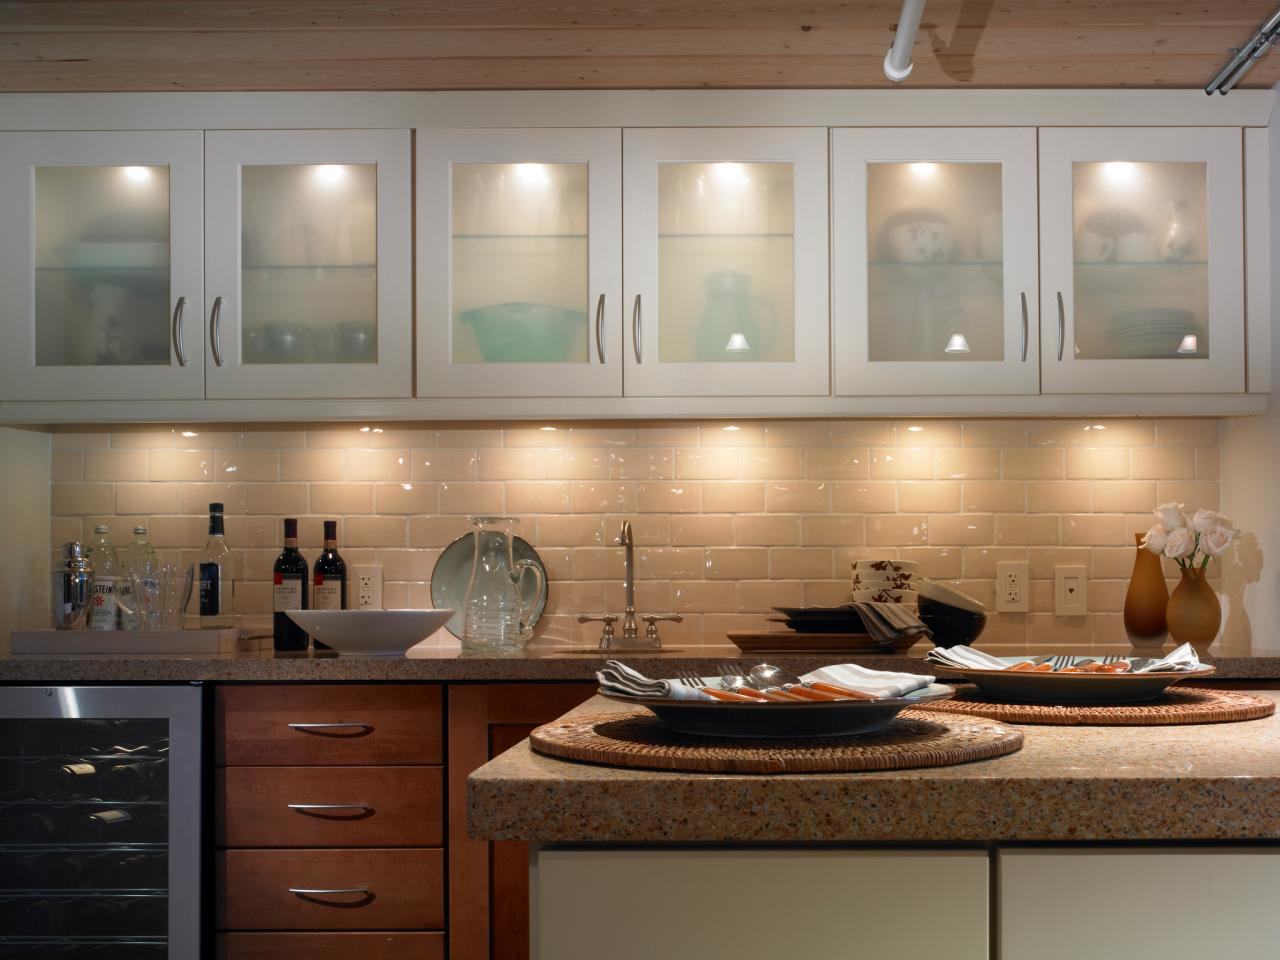 Kitchen Lighting Design Tips DIY - Kitchen up lighting